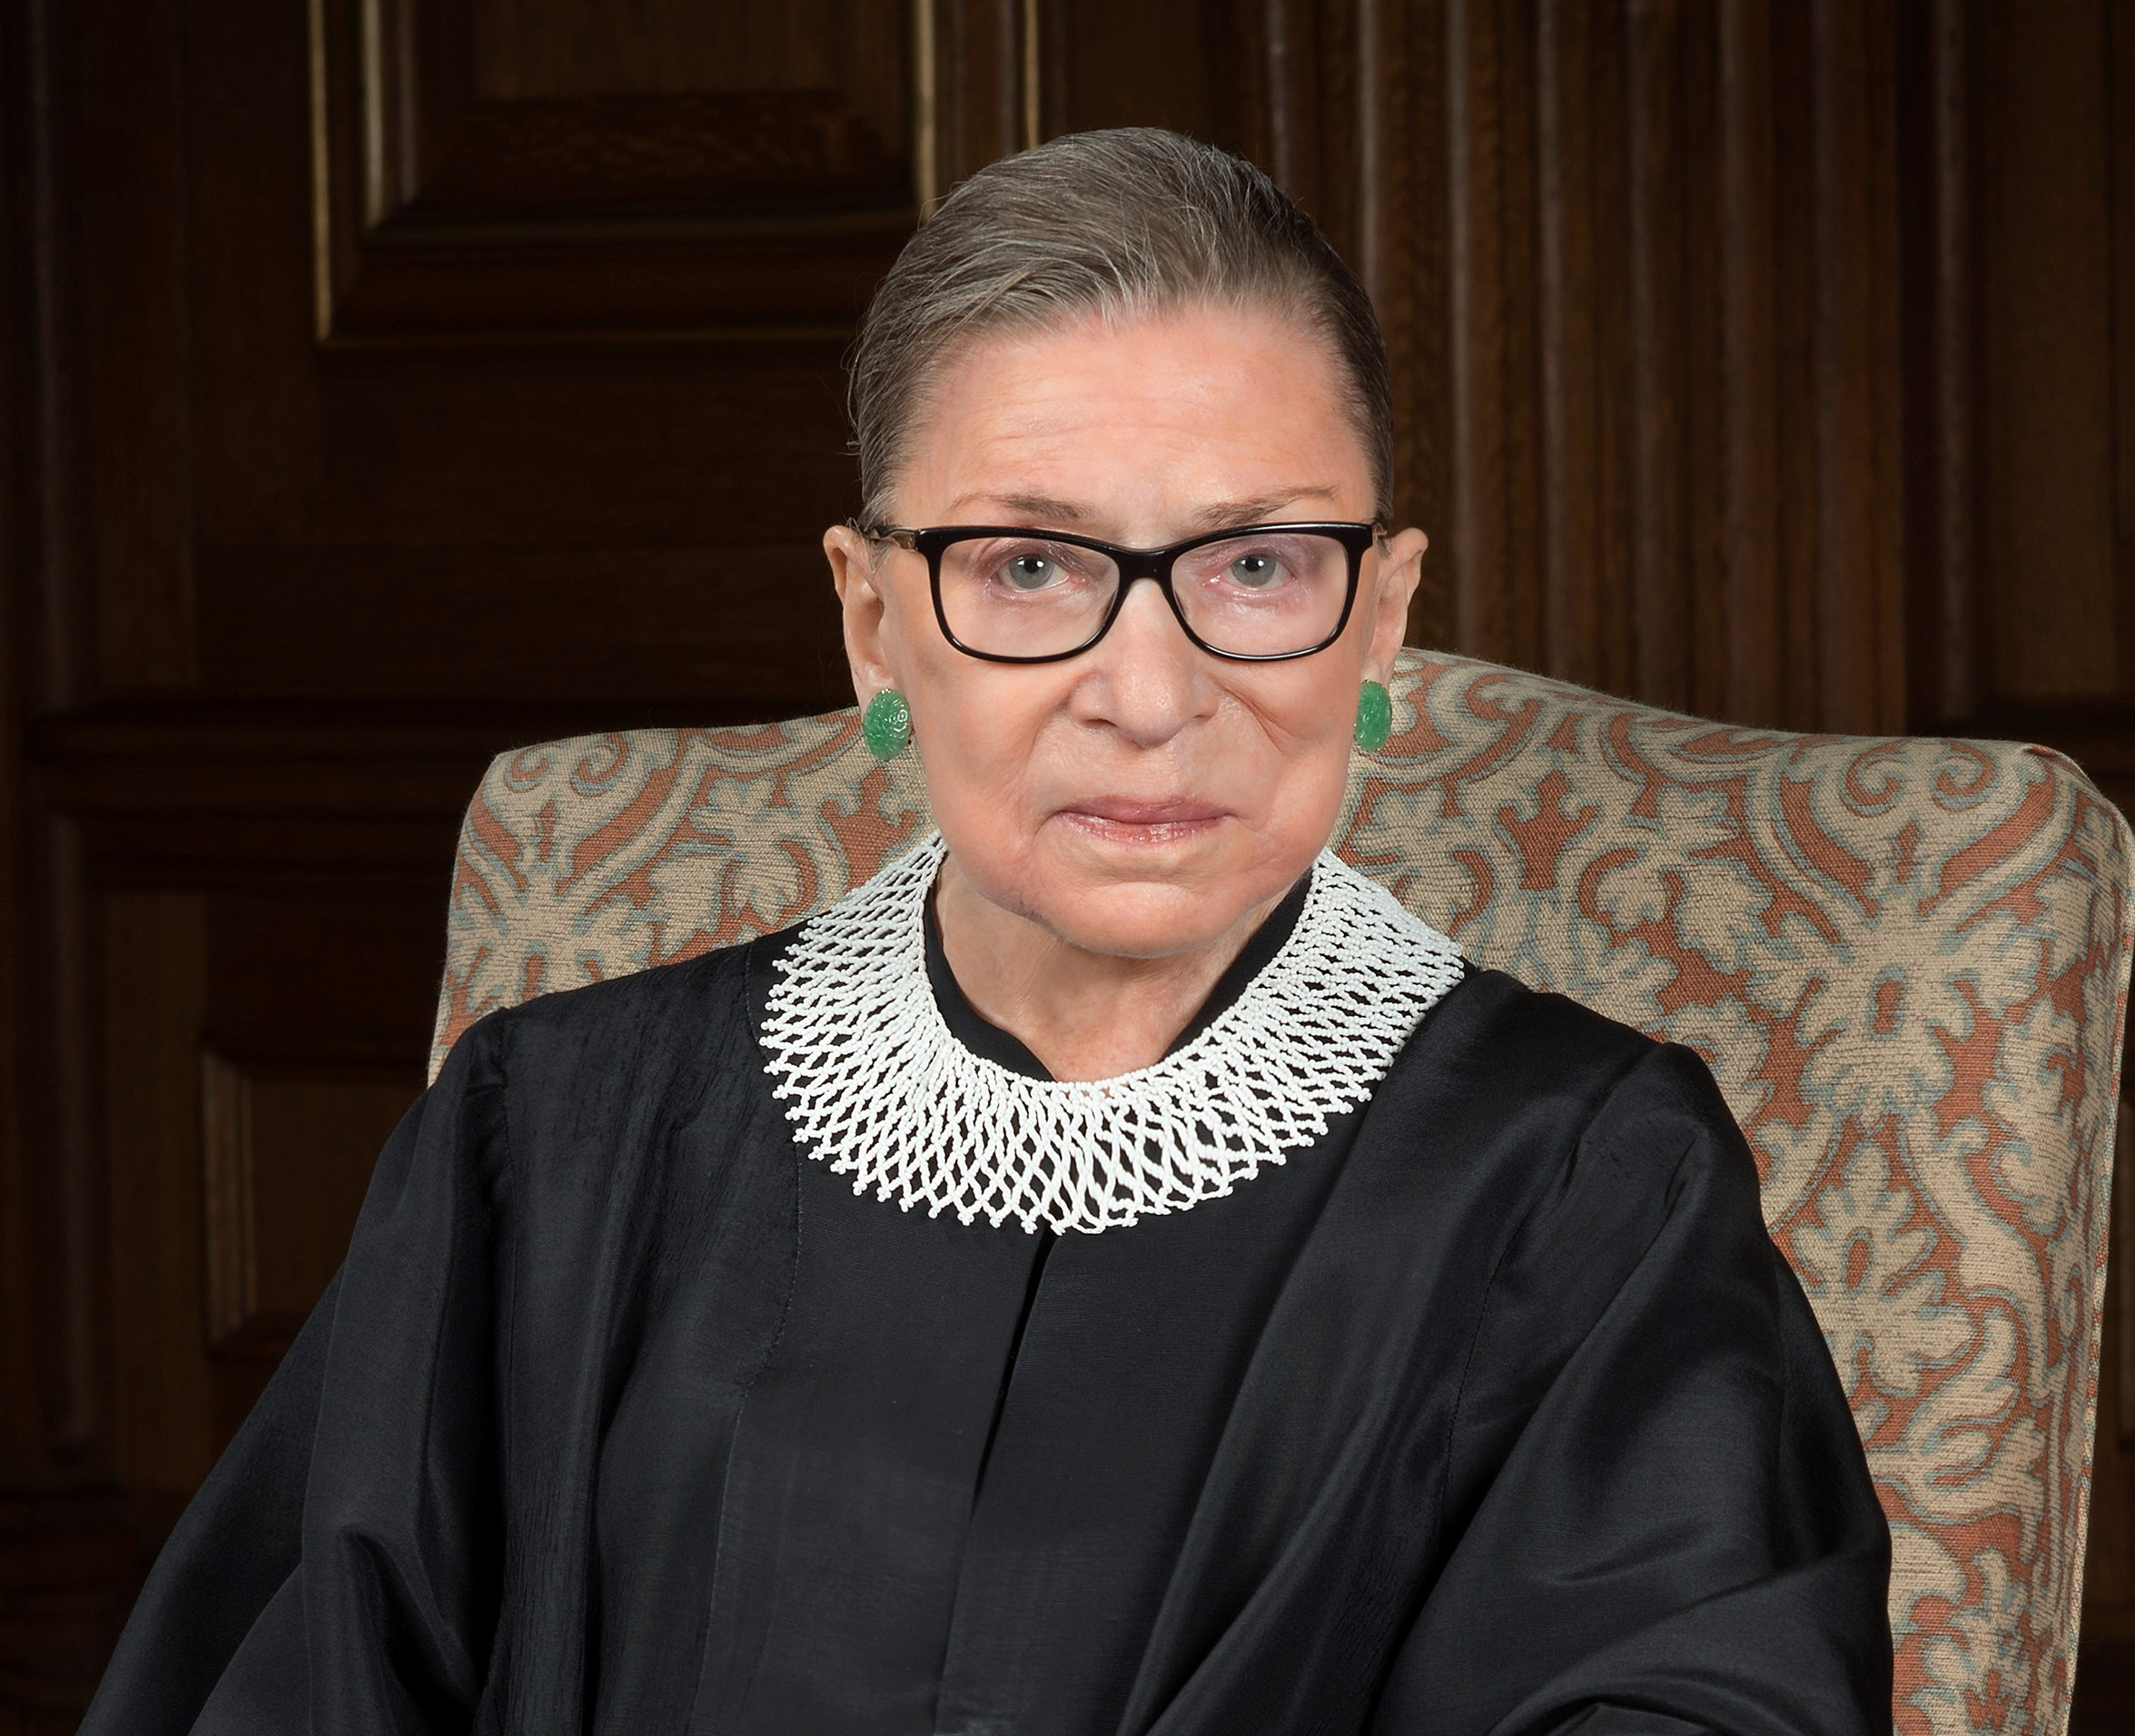 American Jewish Congress Mourns Legal Luminary Ruth Bader Ginsburg